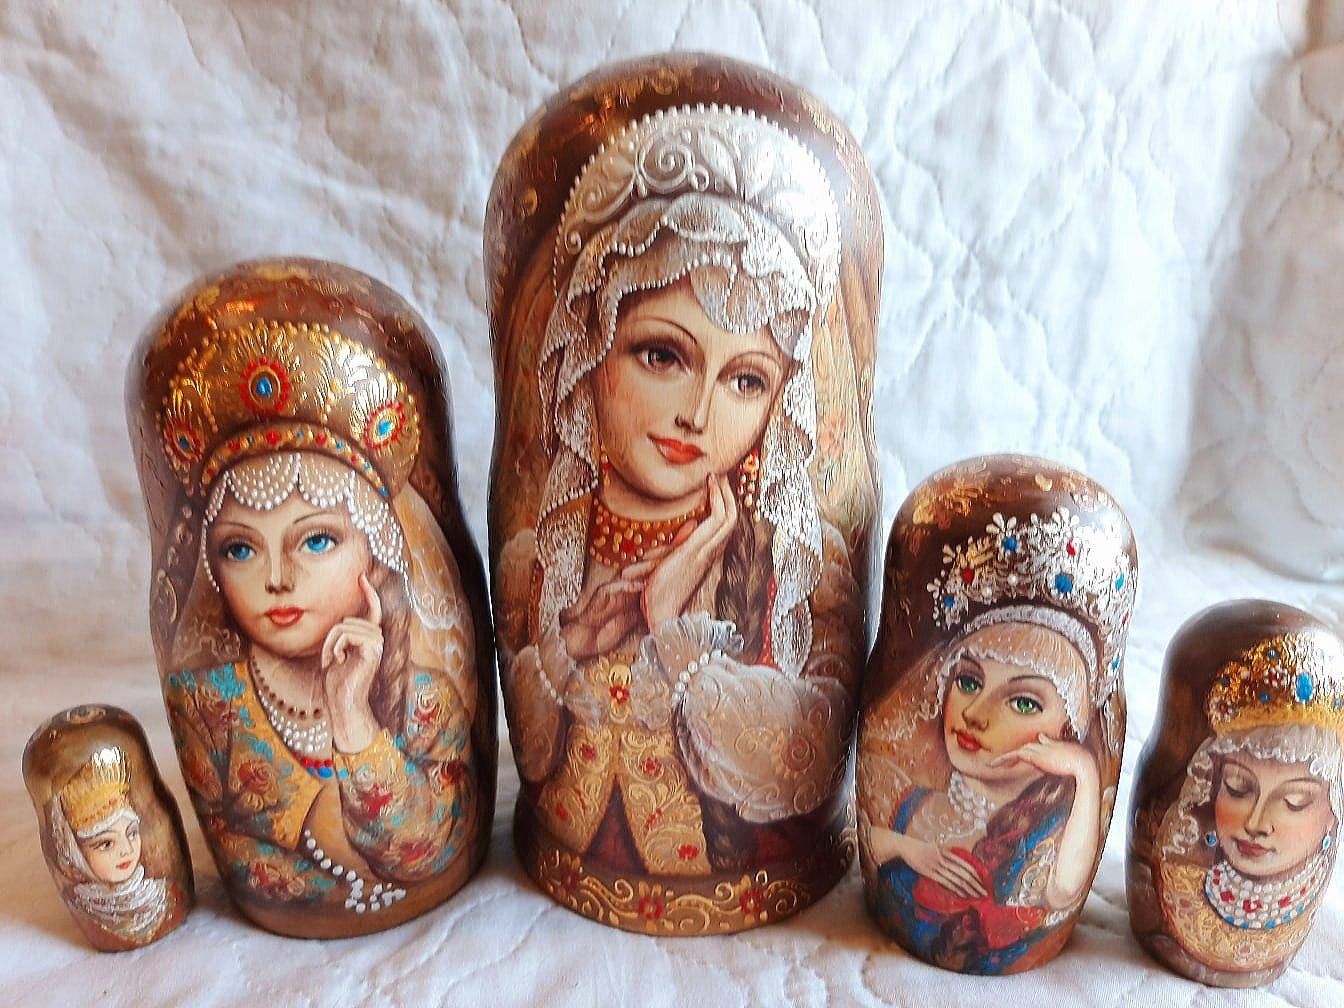 Author's matryoshka RUSSIAN BEAUTIES and THEIR BOGATYR 5 dolls